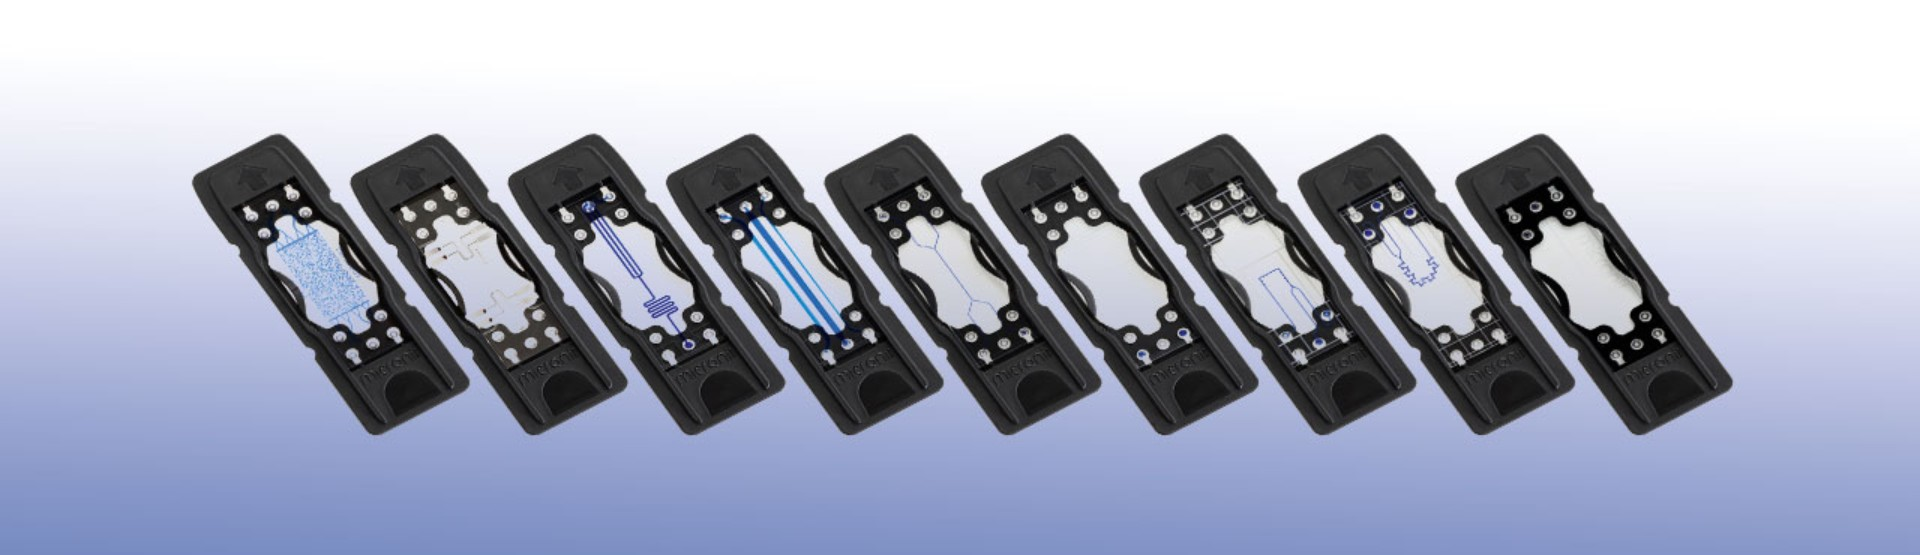 Selection of microfluidic chips available in Micronit's web store